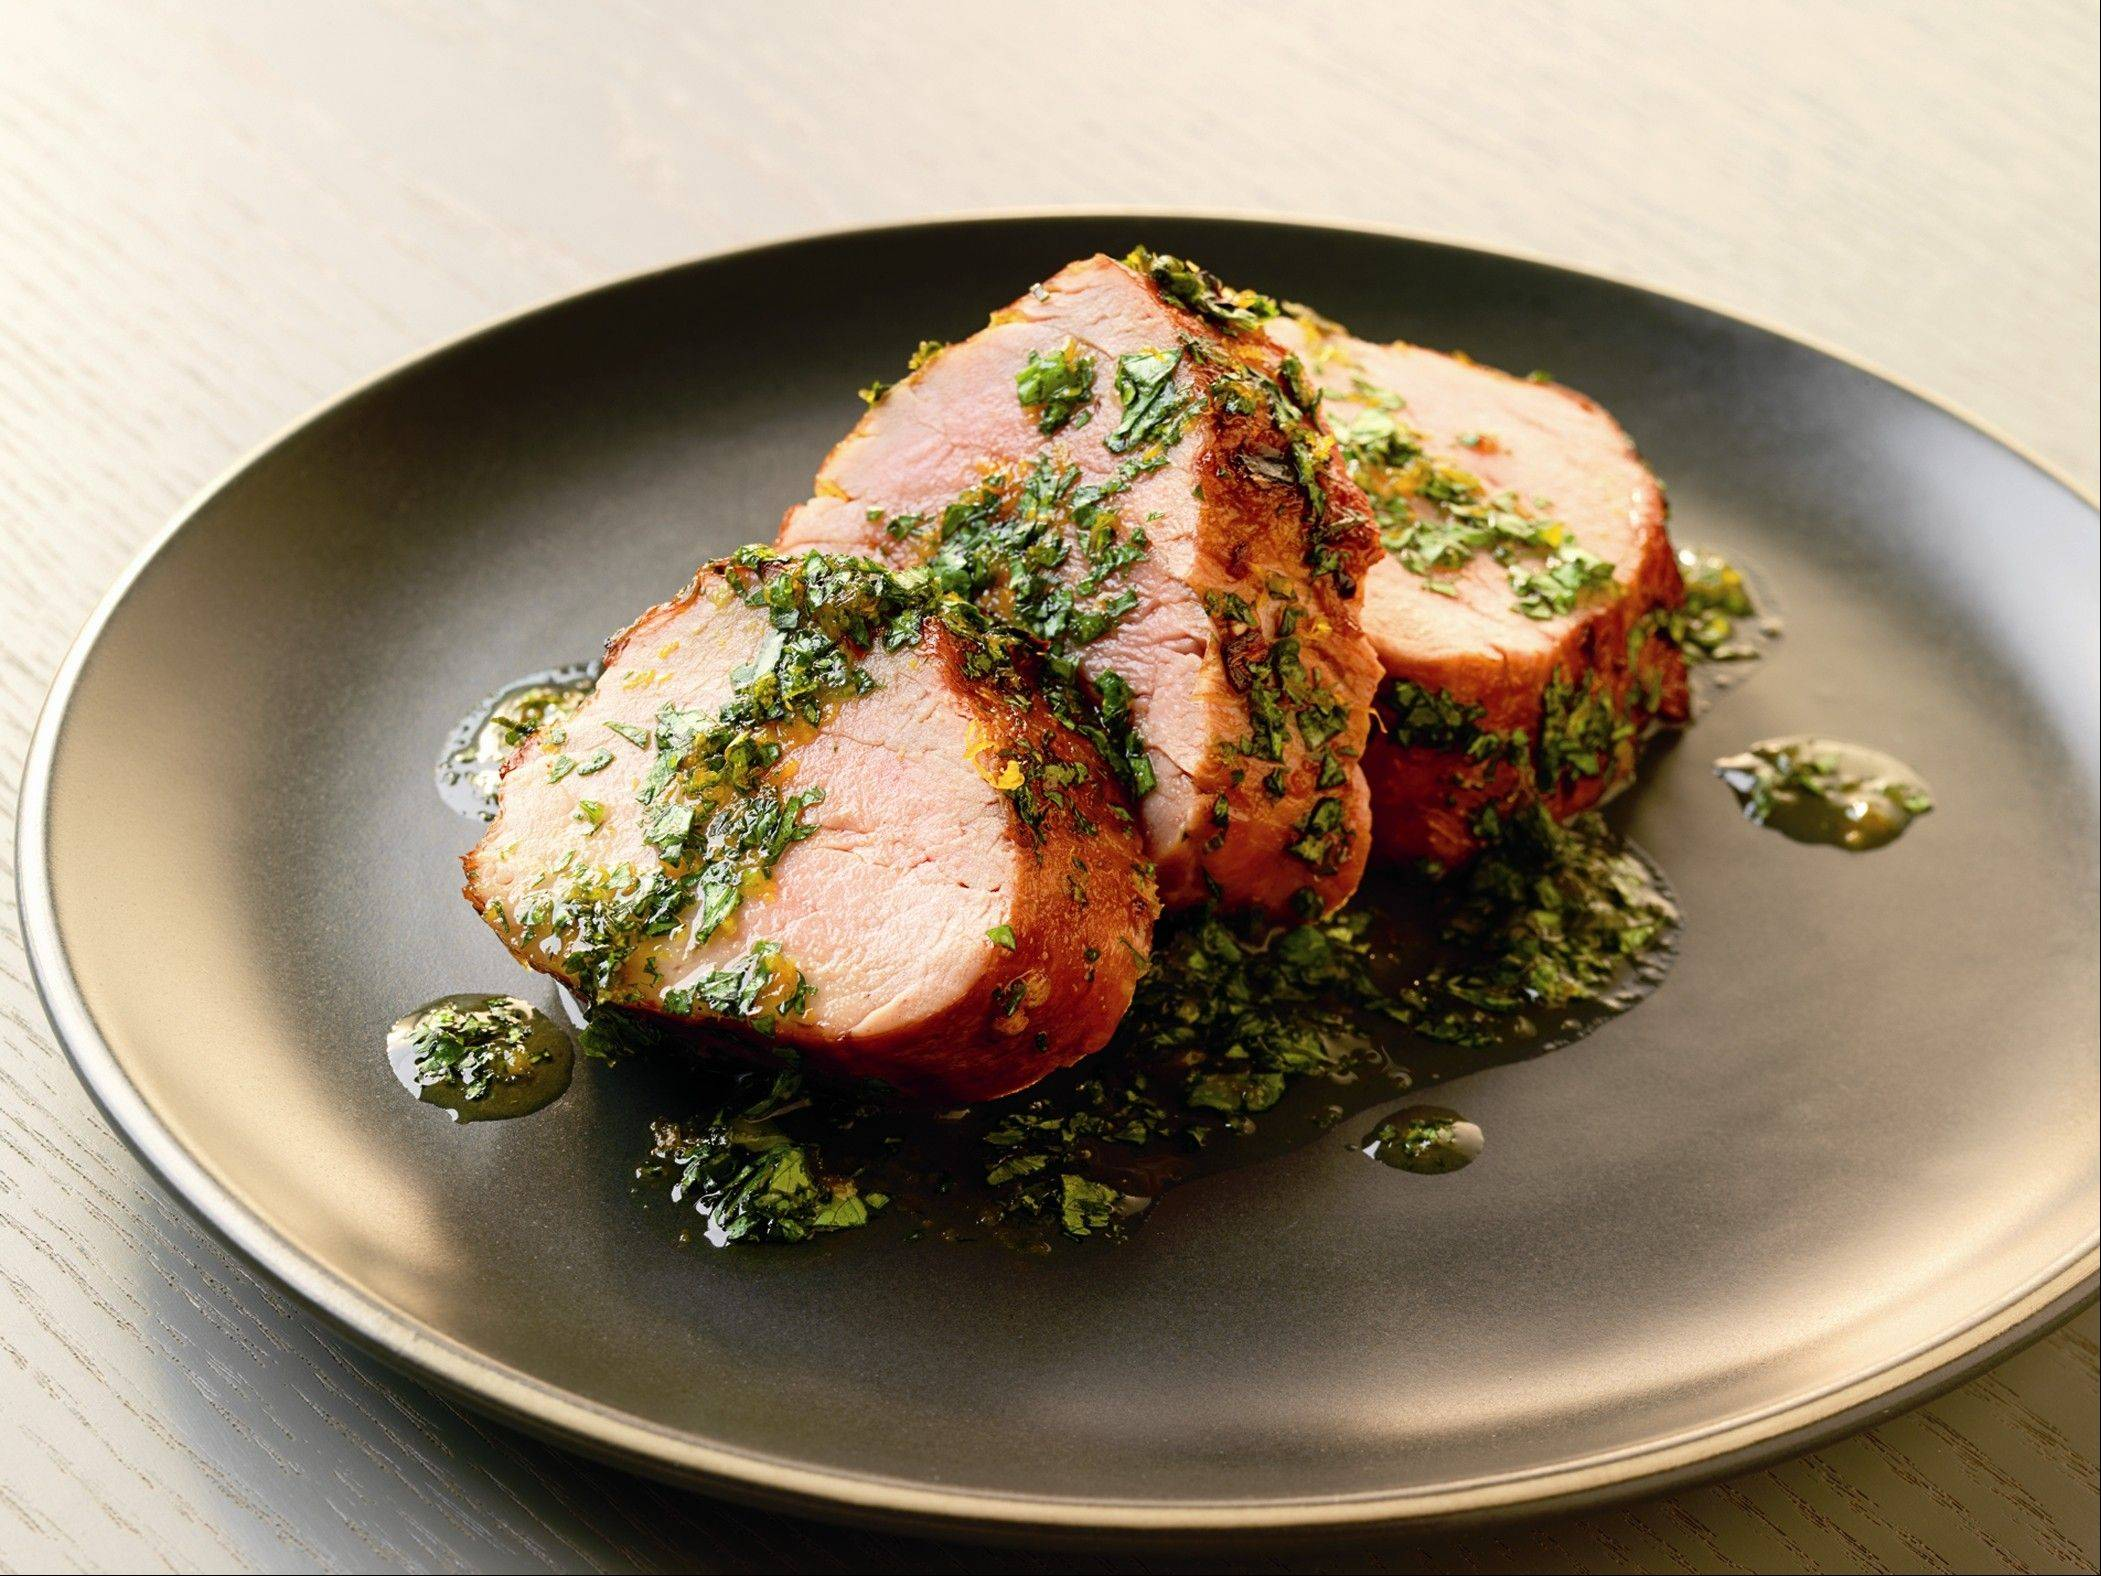 Smoking doesn't have to be an all-day endeavor. This pork tenderloin picks up hickory notes in less than 20 minutes.